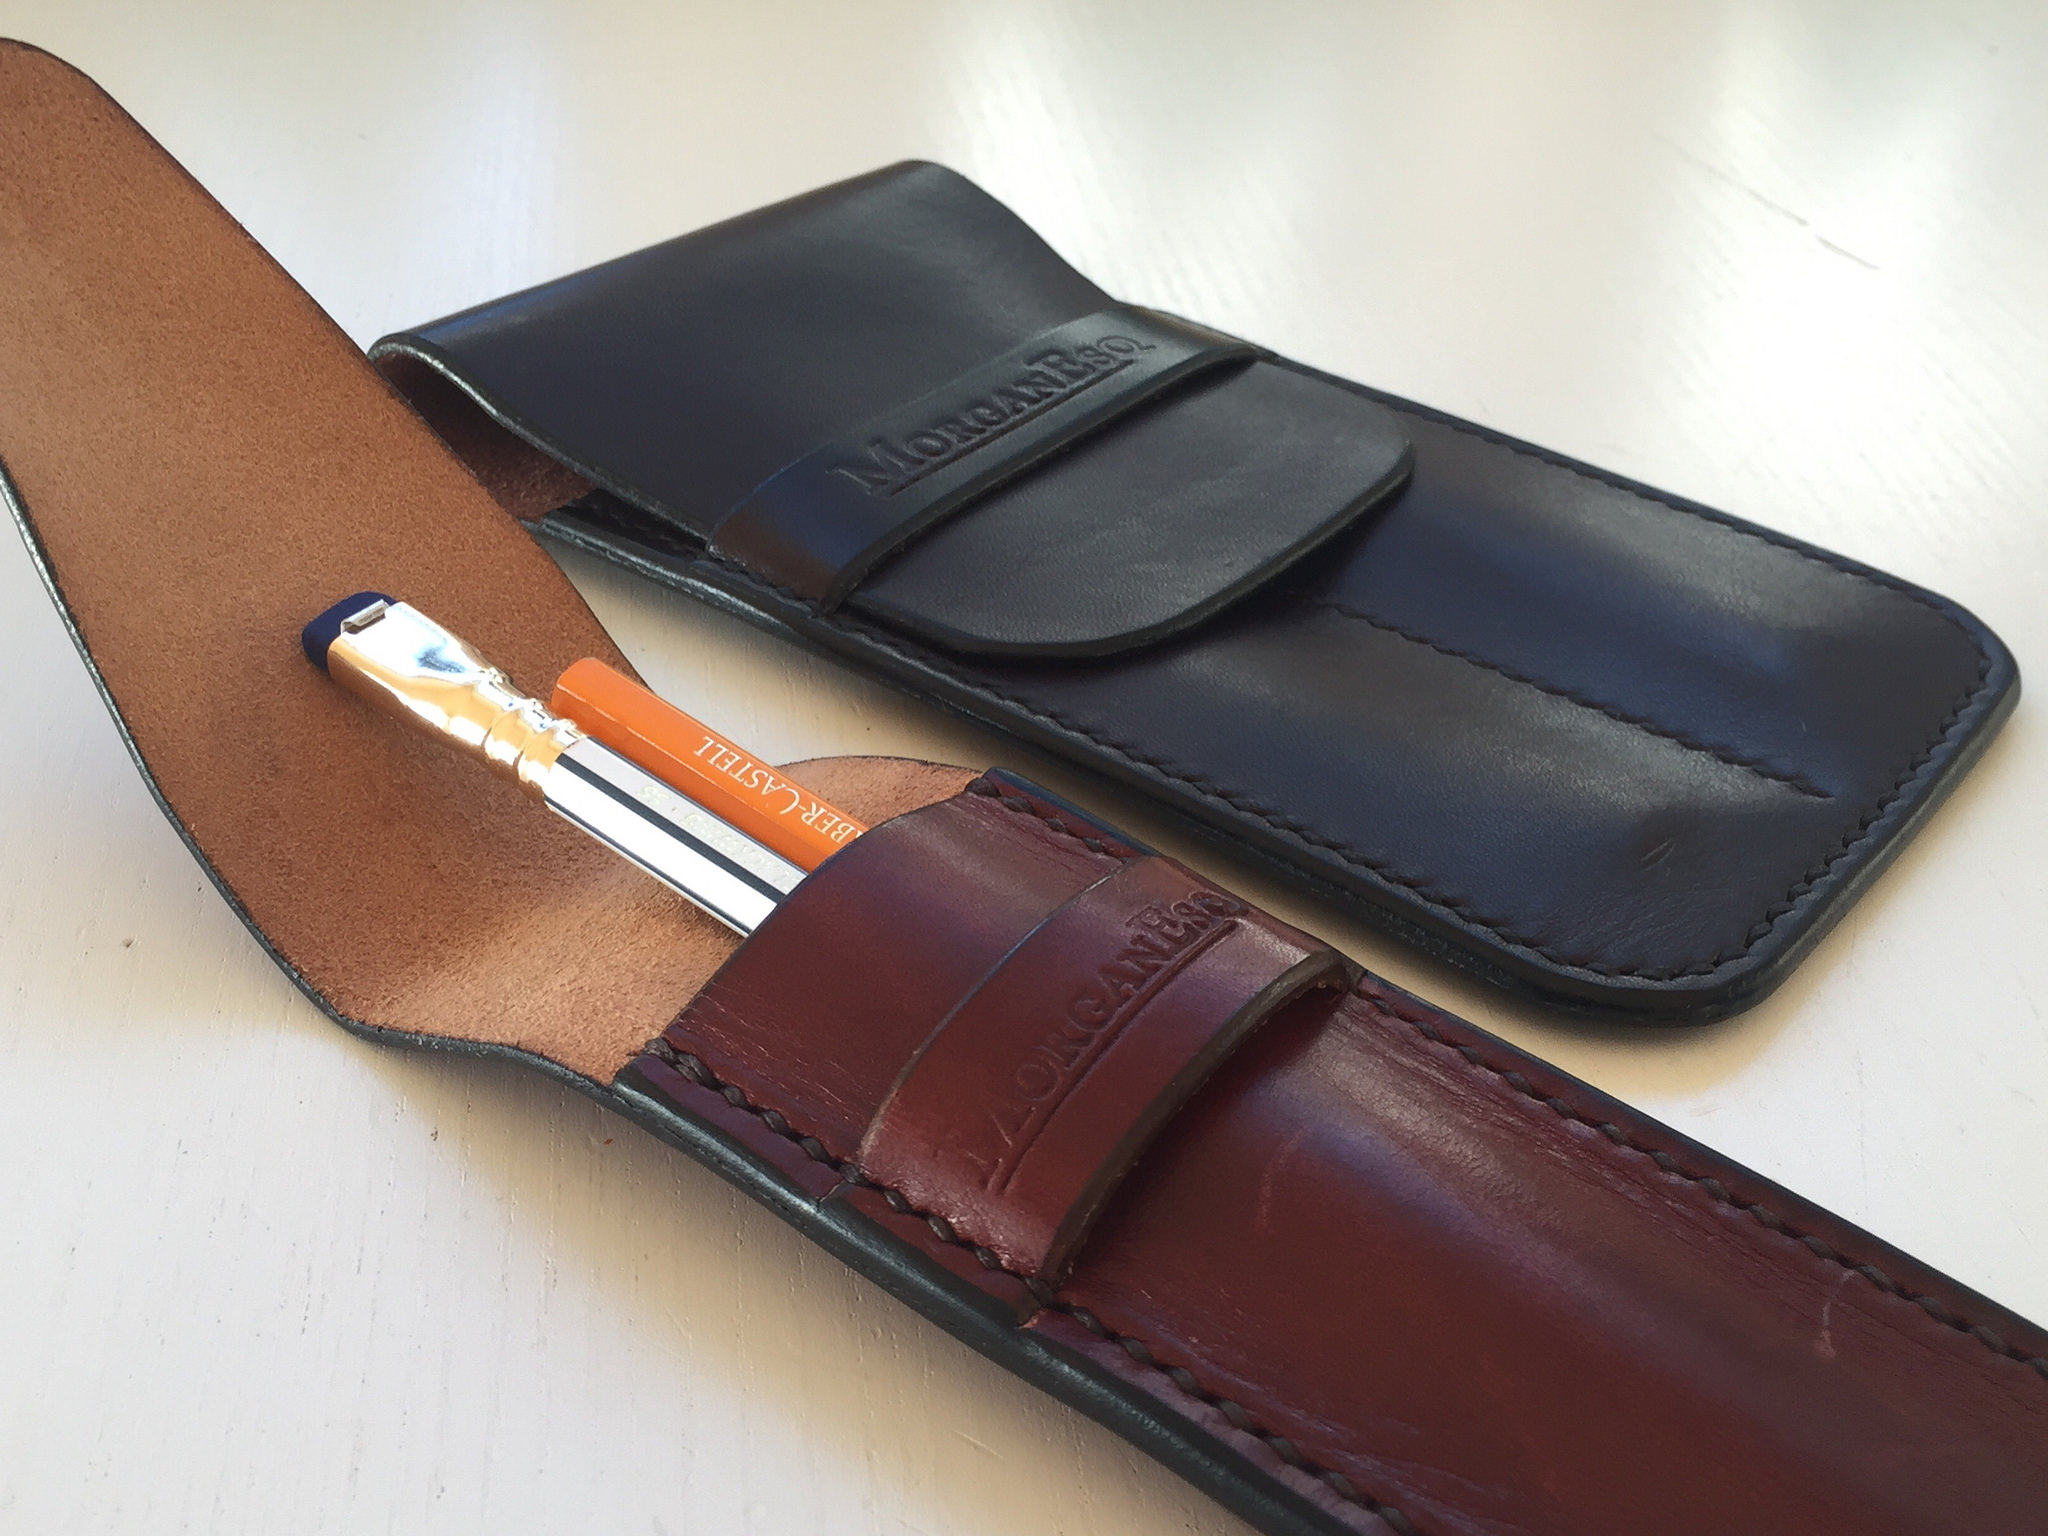 Morgan Esq. Pen & Pencil Pouch